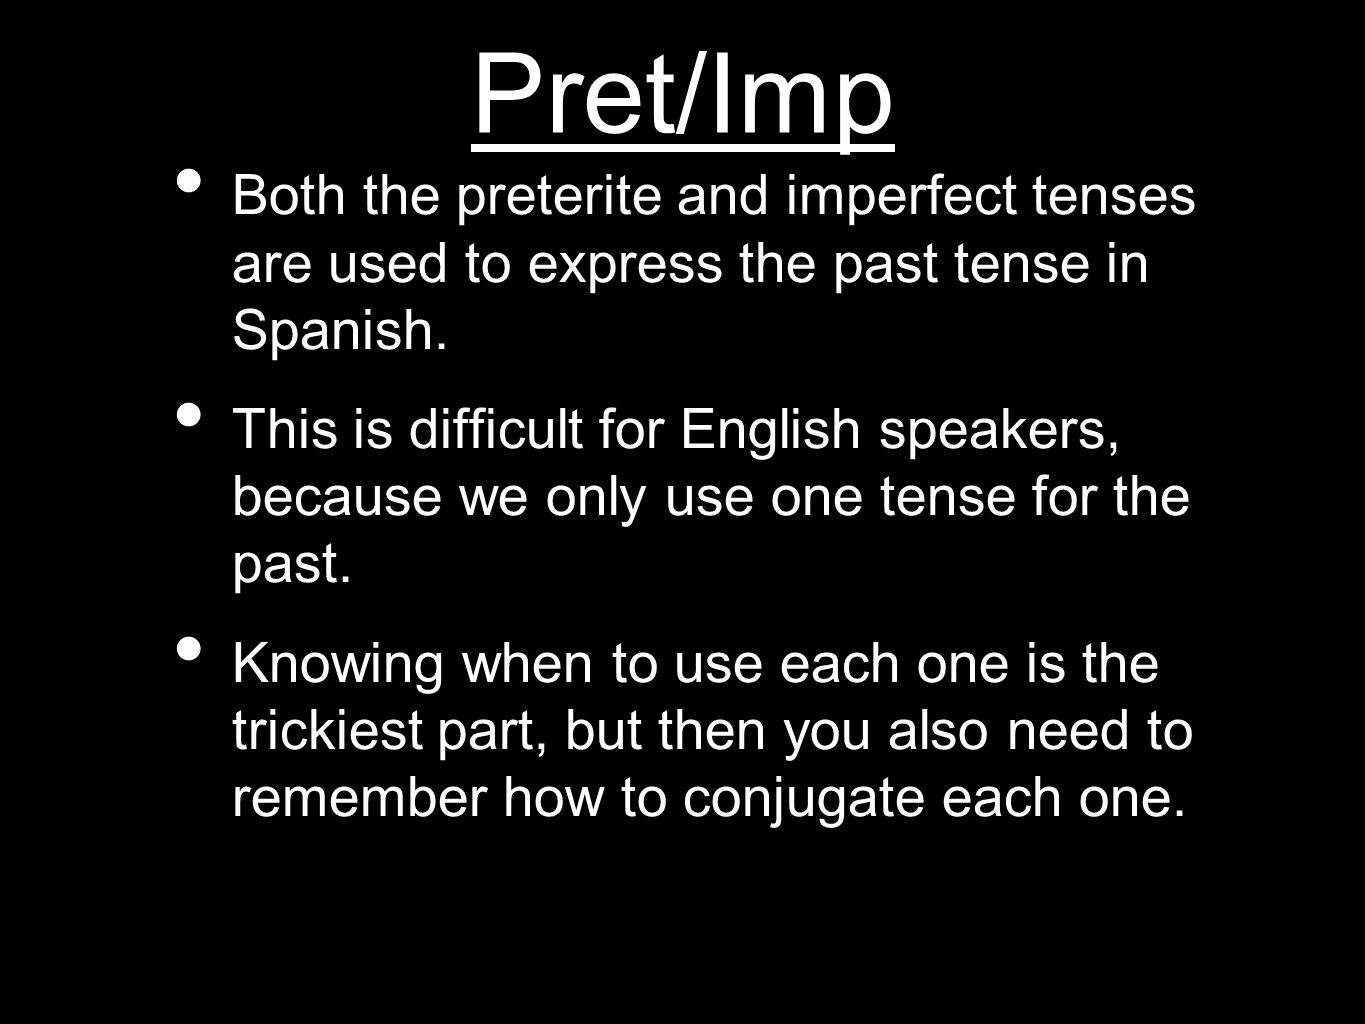 Pret/Imp Both the preterite and imperfect tenses are used to express the past tense in Spanish.